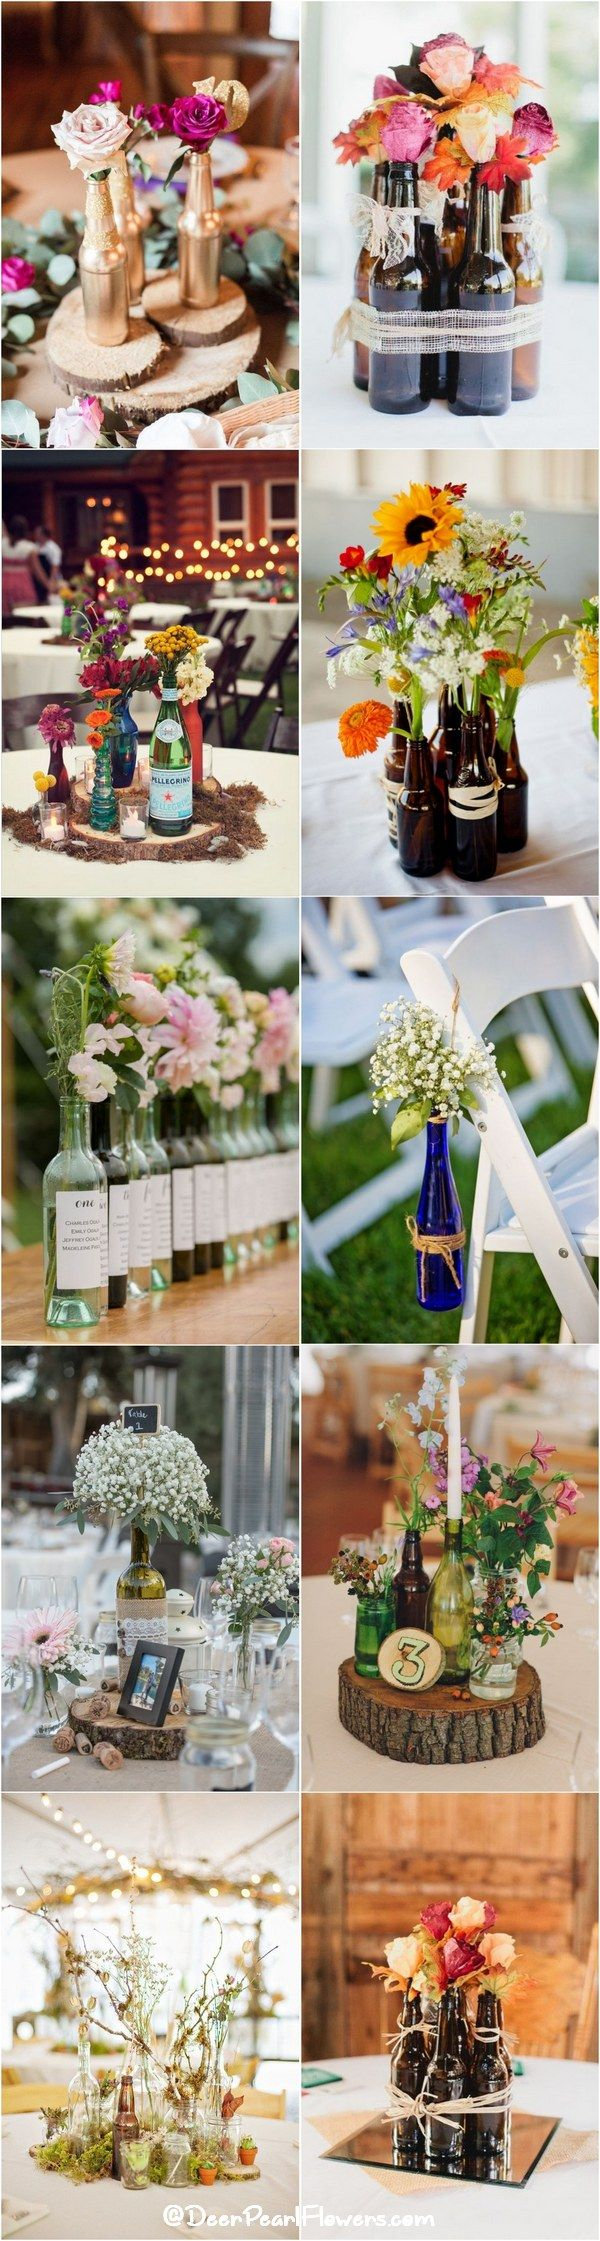 20 wine bottle decor ideas to steal for your vineyard wedding 20 wine bottle decor ideas to steal for your vineyard wedding junglespirit Gallery